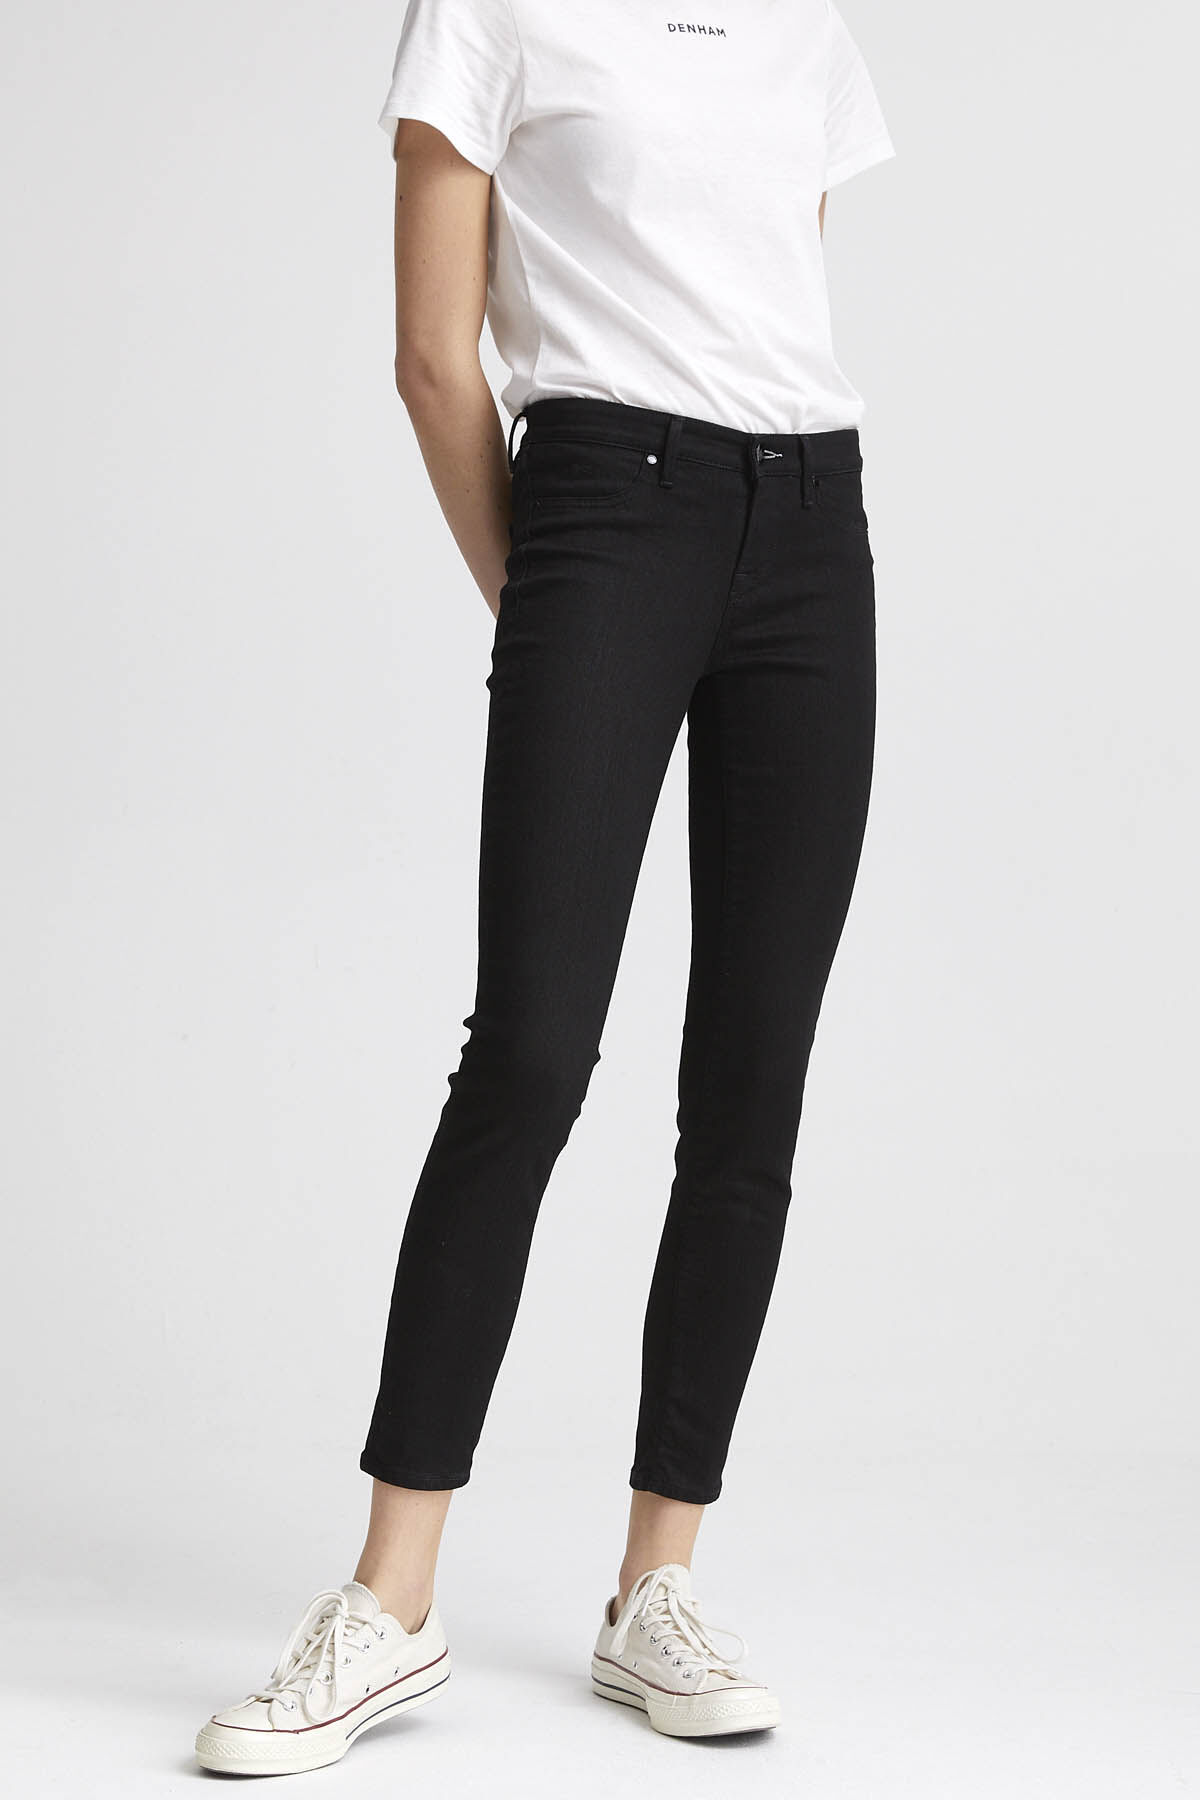 SPRAY Pure Black Finish Denim - Mid-rise, Tight Fit